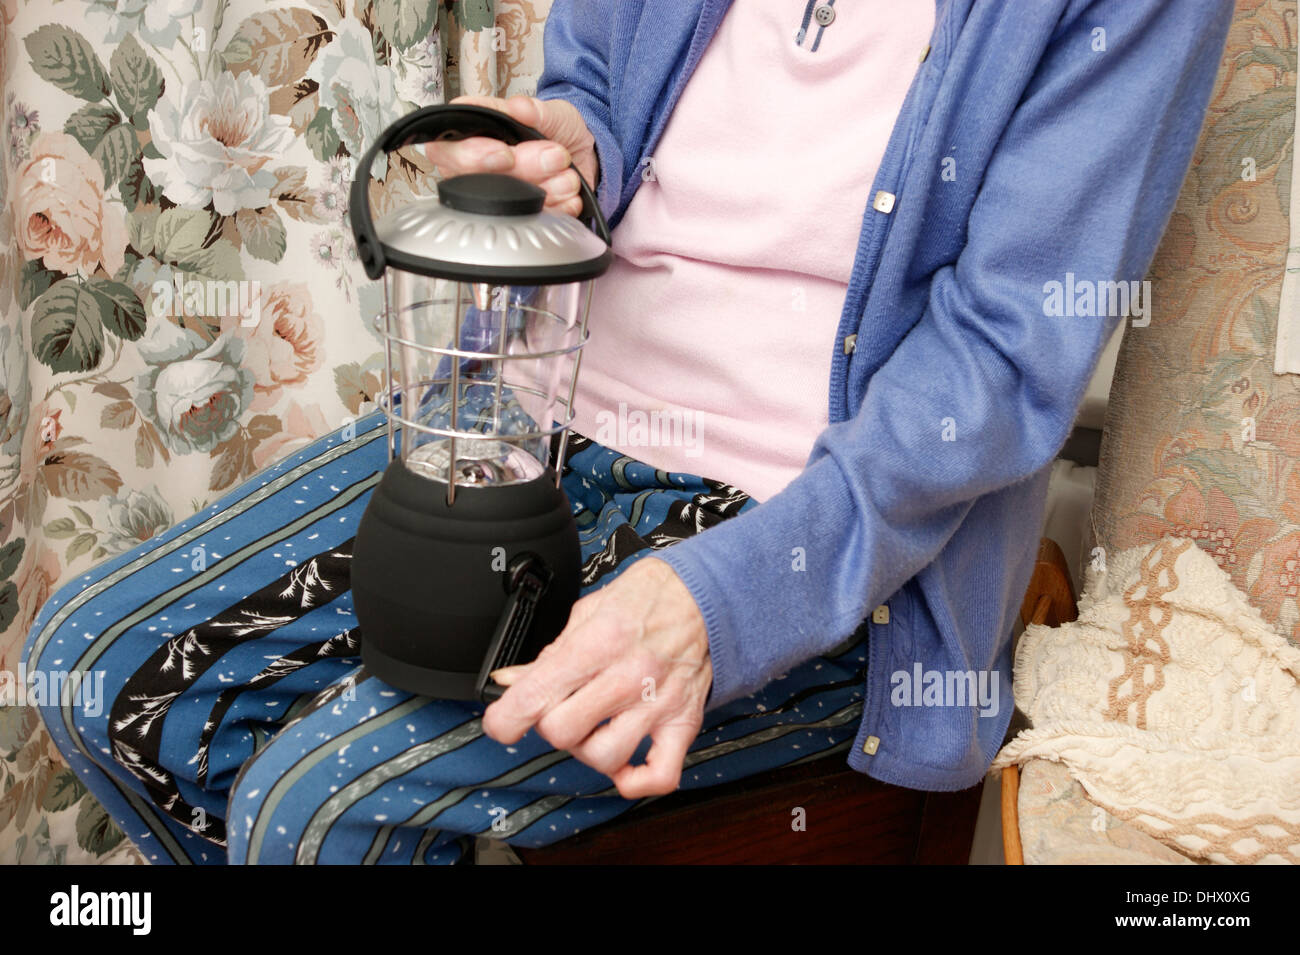 Elderly woman winding up a wind up lantern used as emergency lighting for power cuts power failures & running out of electricity - Stock Image